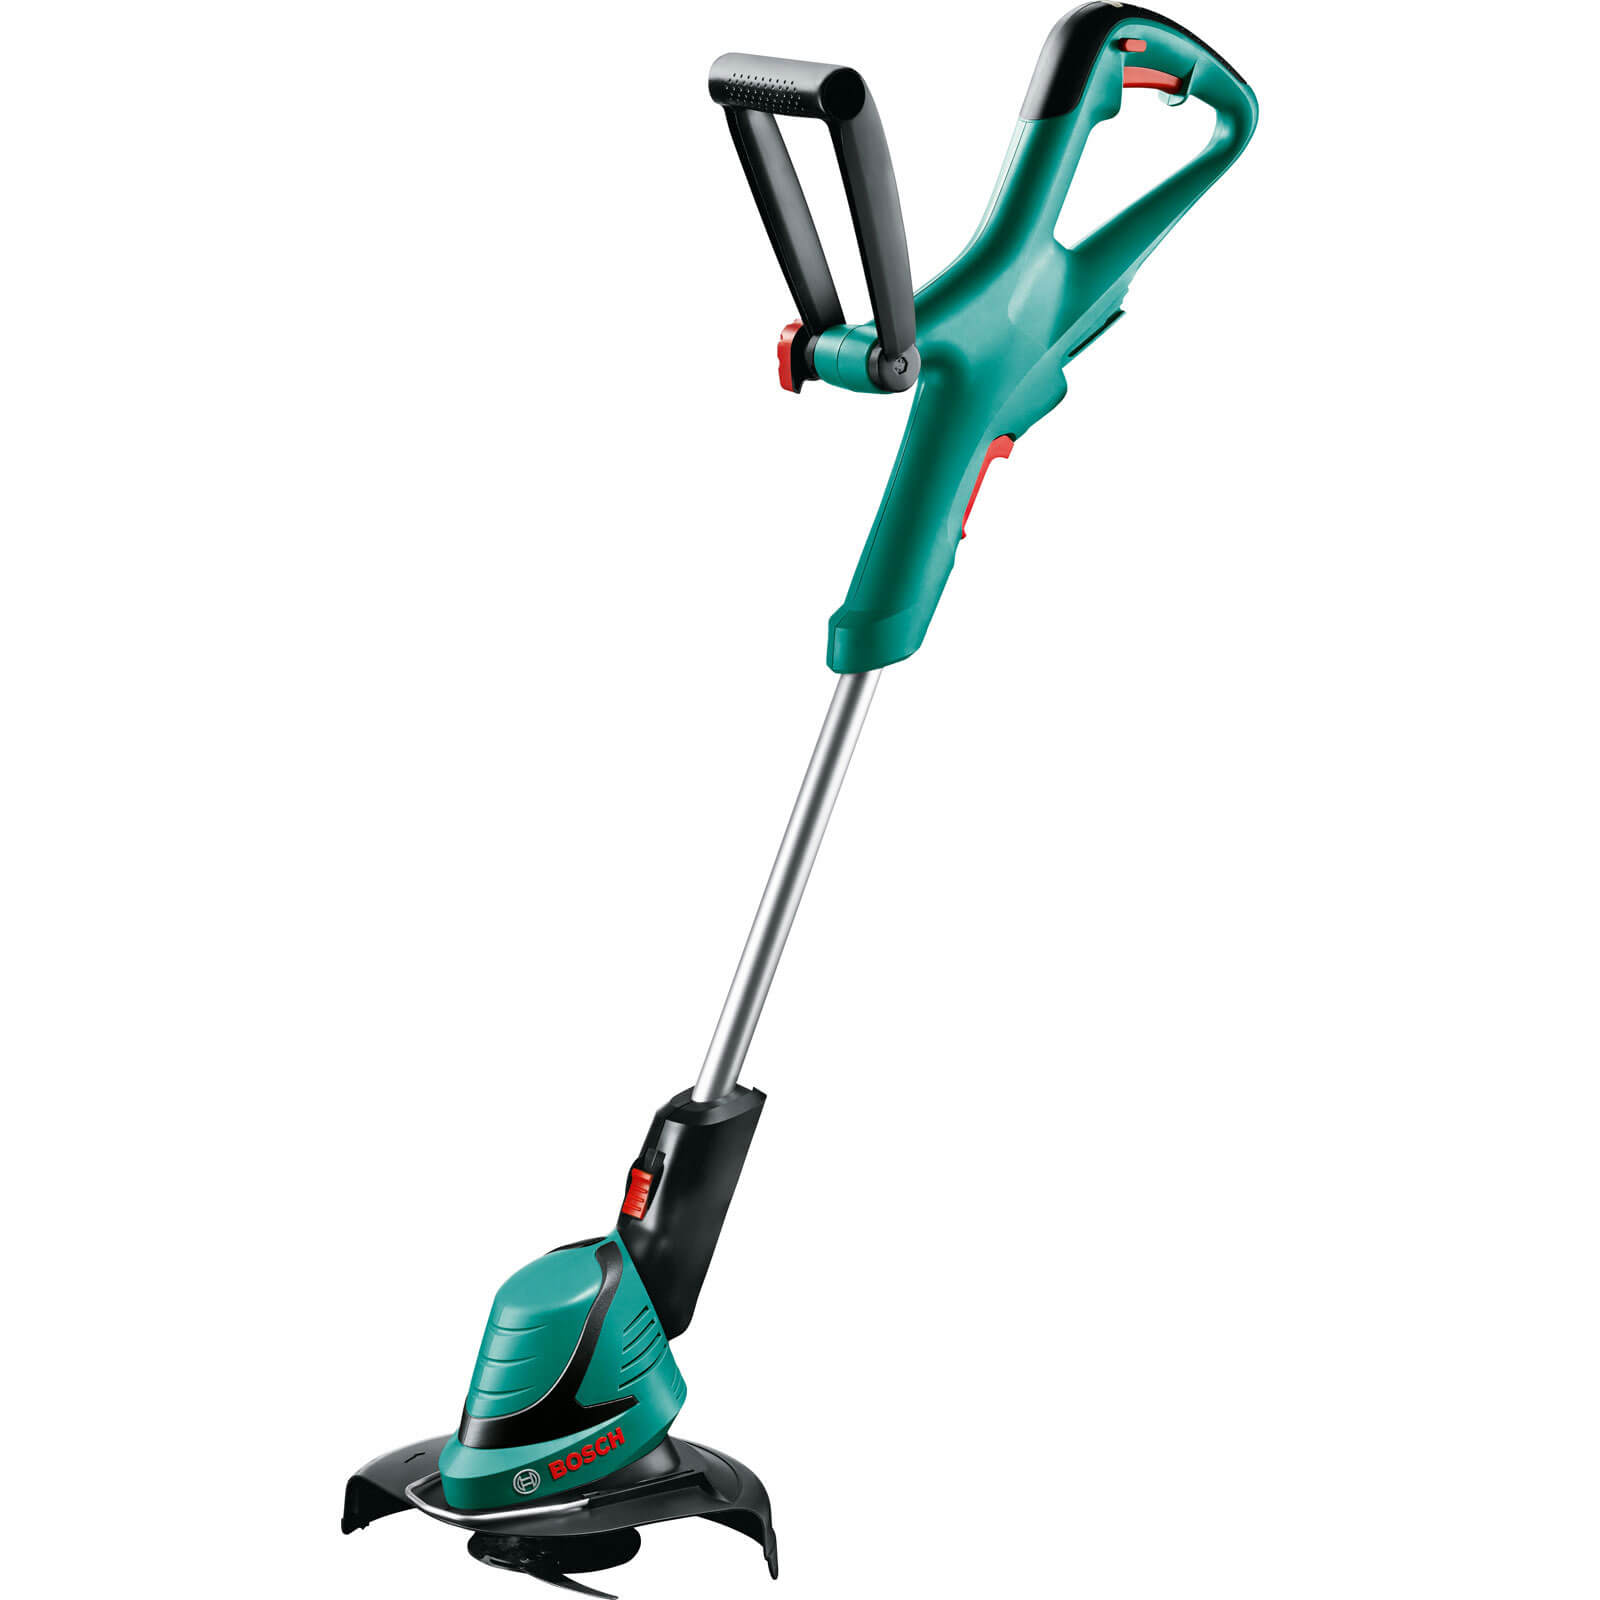 Bosch POWER4ALL ART 26-18 LI 18v Cordless Grass Trimmer 260mm Cut Width without Battery or Charger